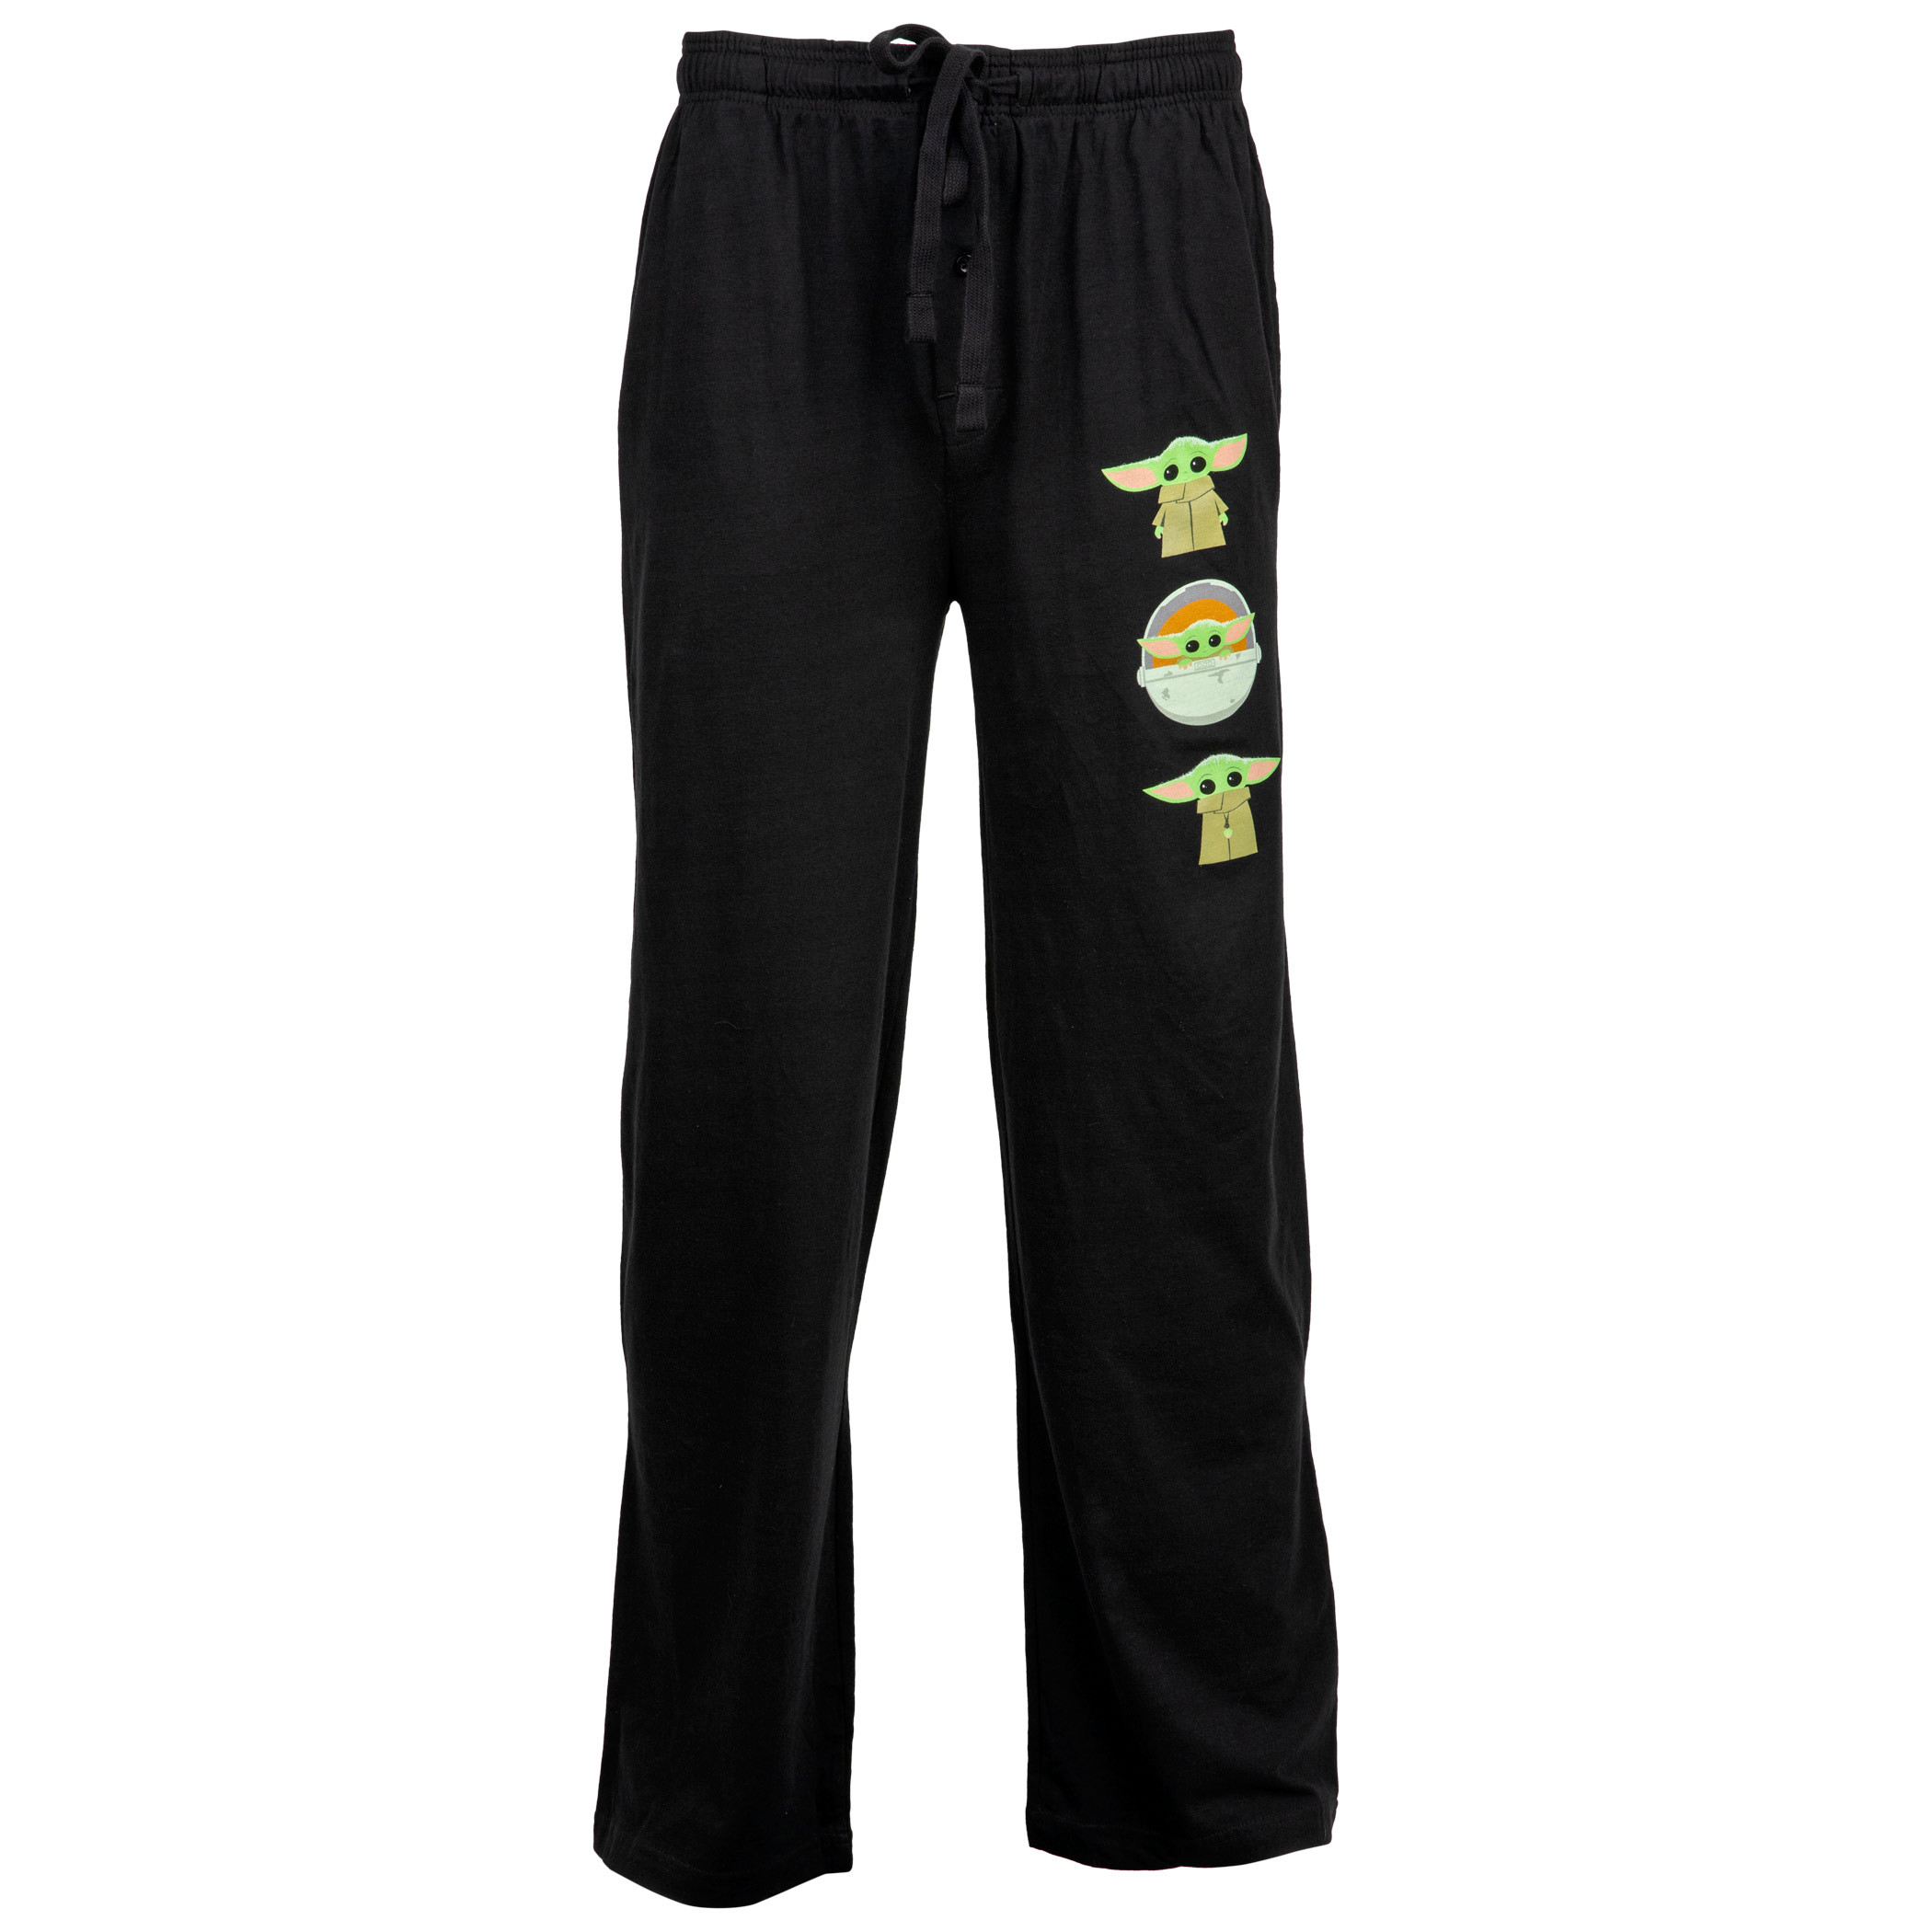 Star Wars The Mandalorian The Child Character Unisex Sleep Pants